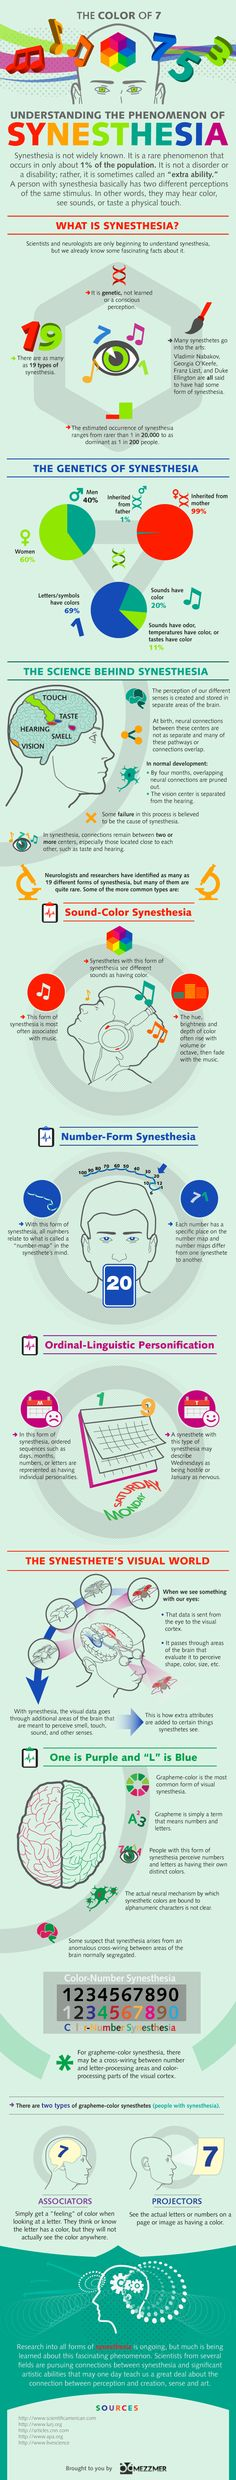 Synesthesia.... This is fascinating stuff!